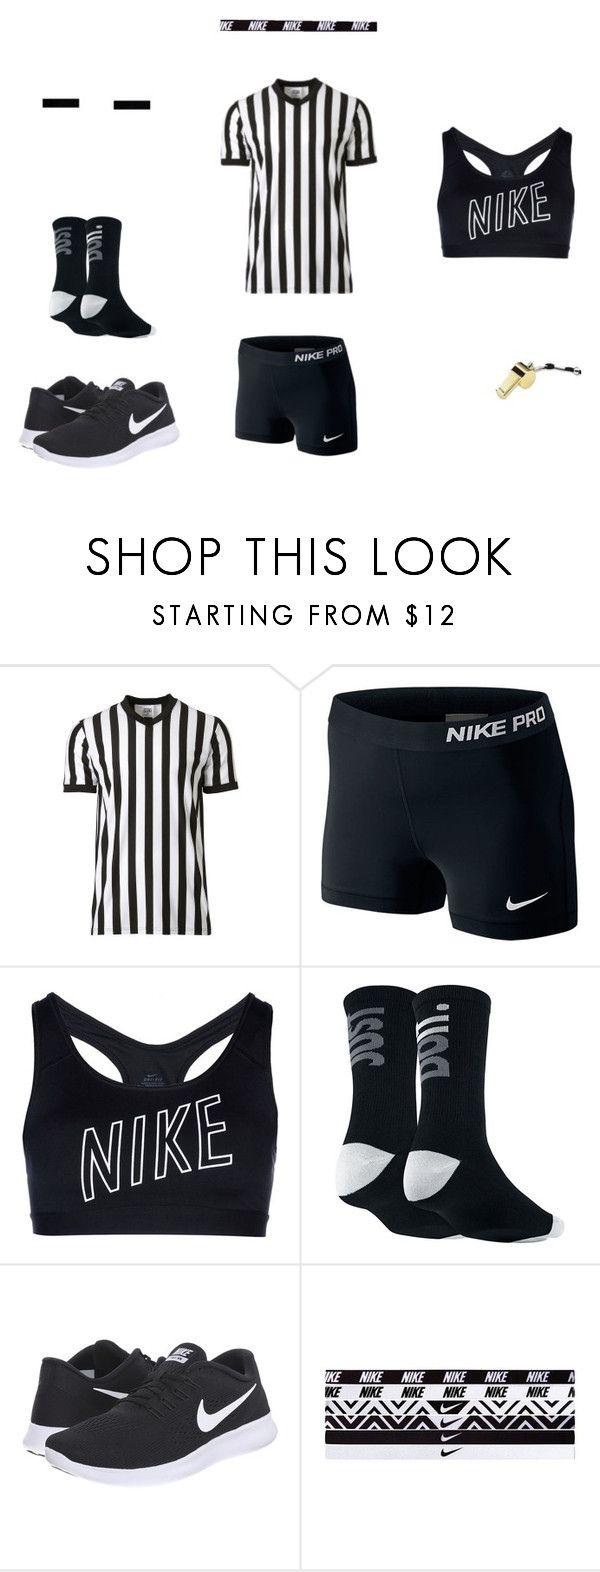 """Referee Halloween costume"" by girlfromanotherplanet ❤ liked on Polyvore featuring NIKE and Calvin Klein"